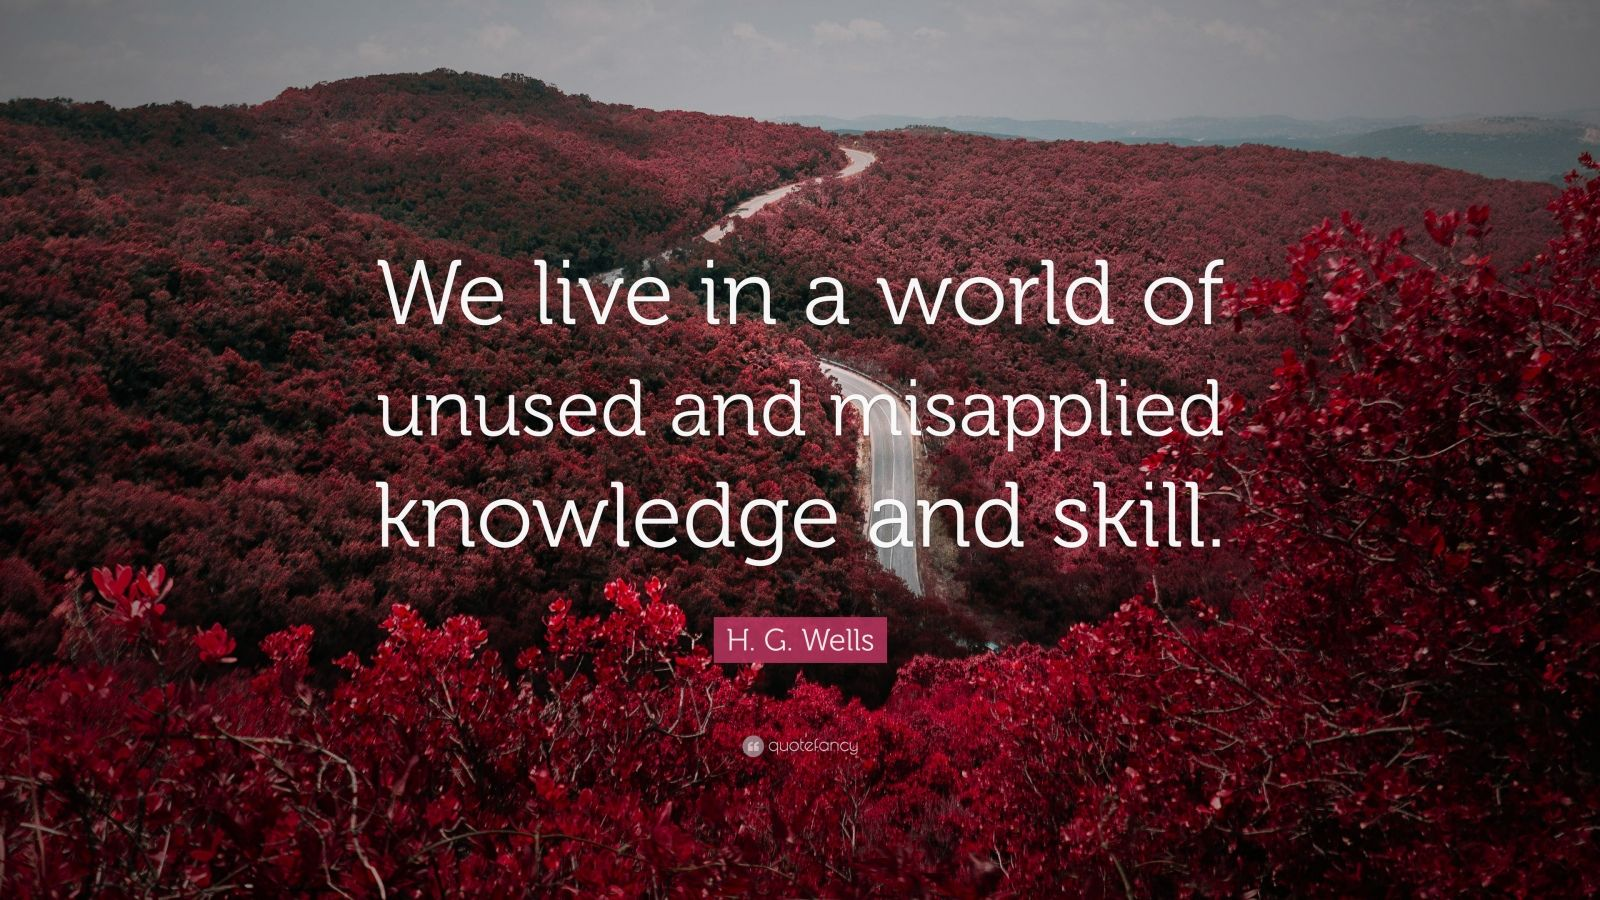 """H. G. Wells Quote: """"We live in a world of unused and misapplied knowledge and skill."""""""